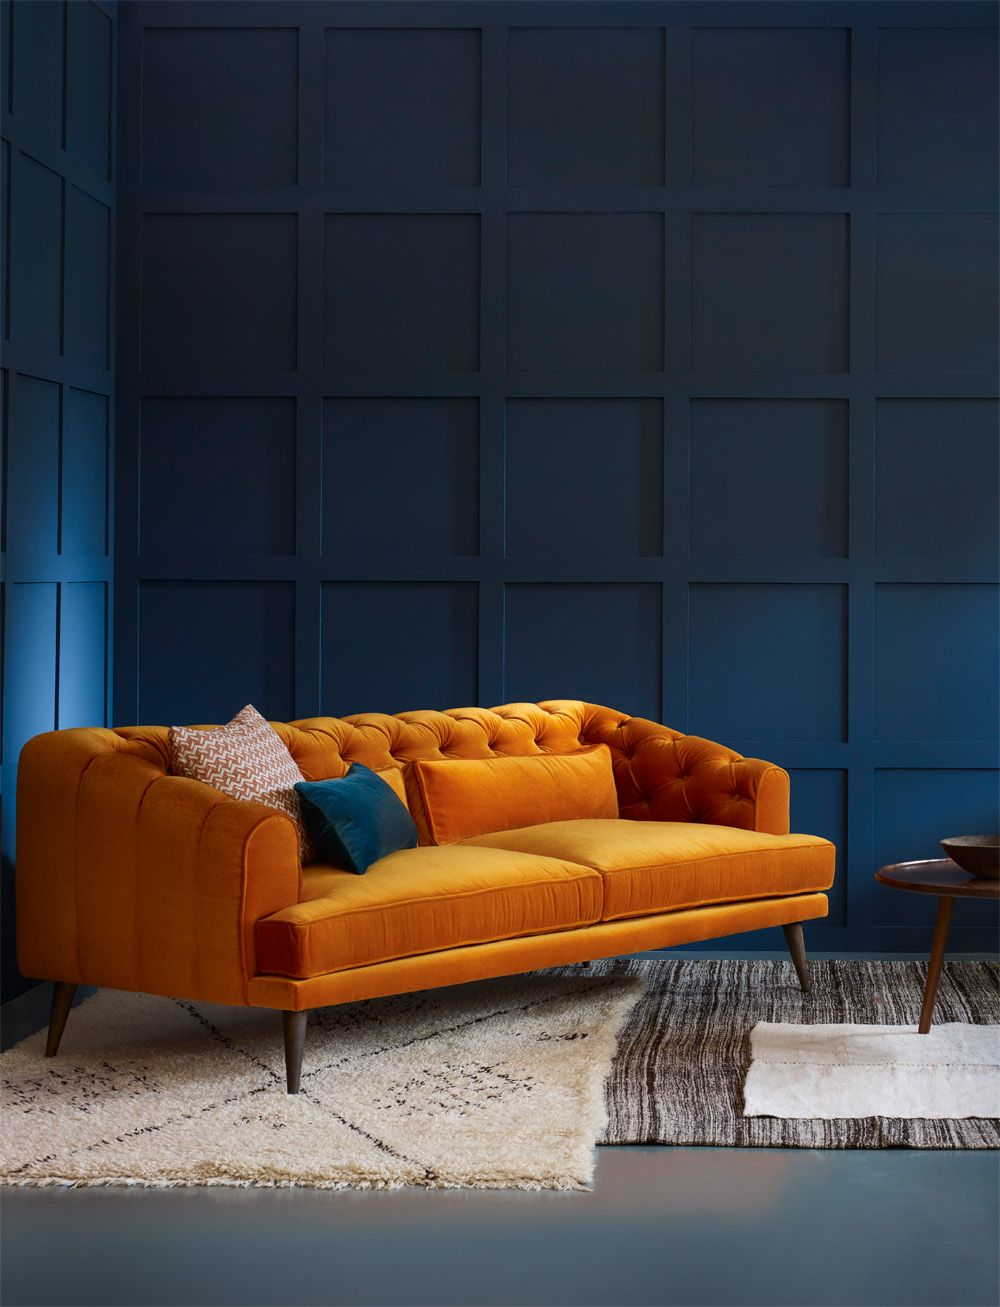 Pin By Alena Sgushena On Mebel Orange Sofa Design Living Room Orange Dark Blue Rooms